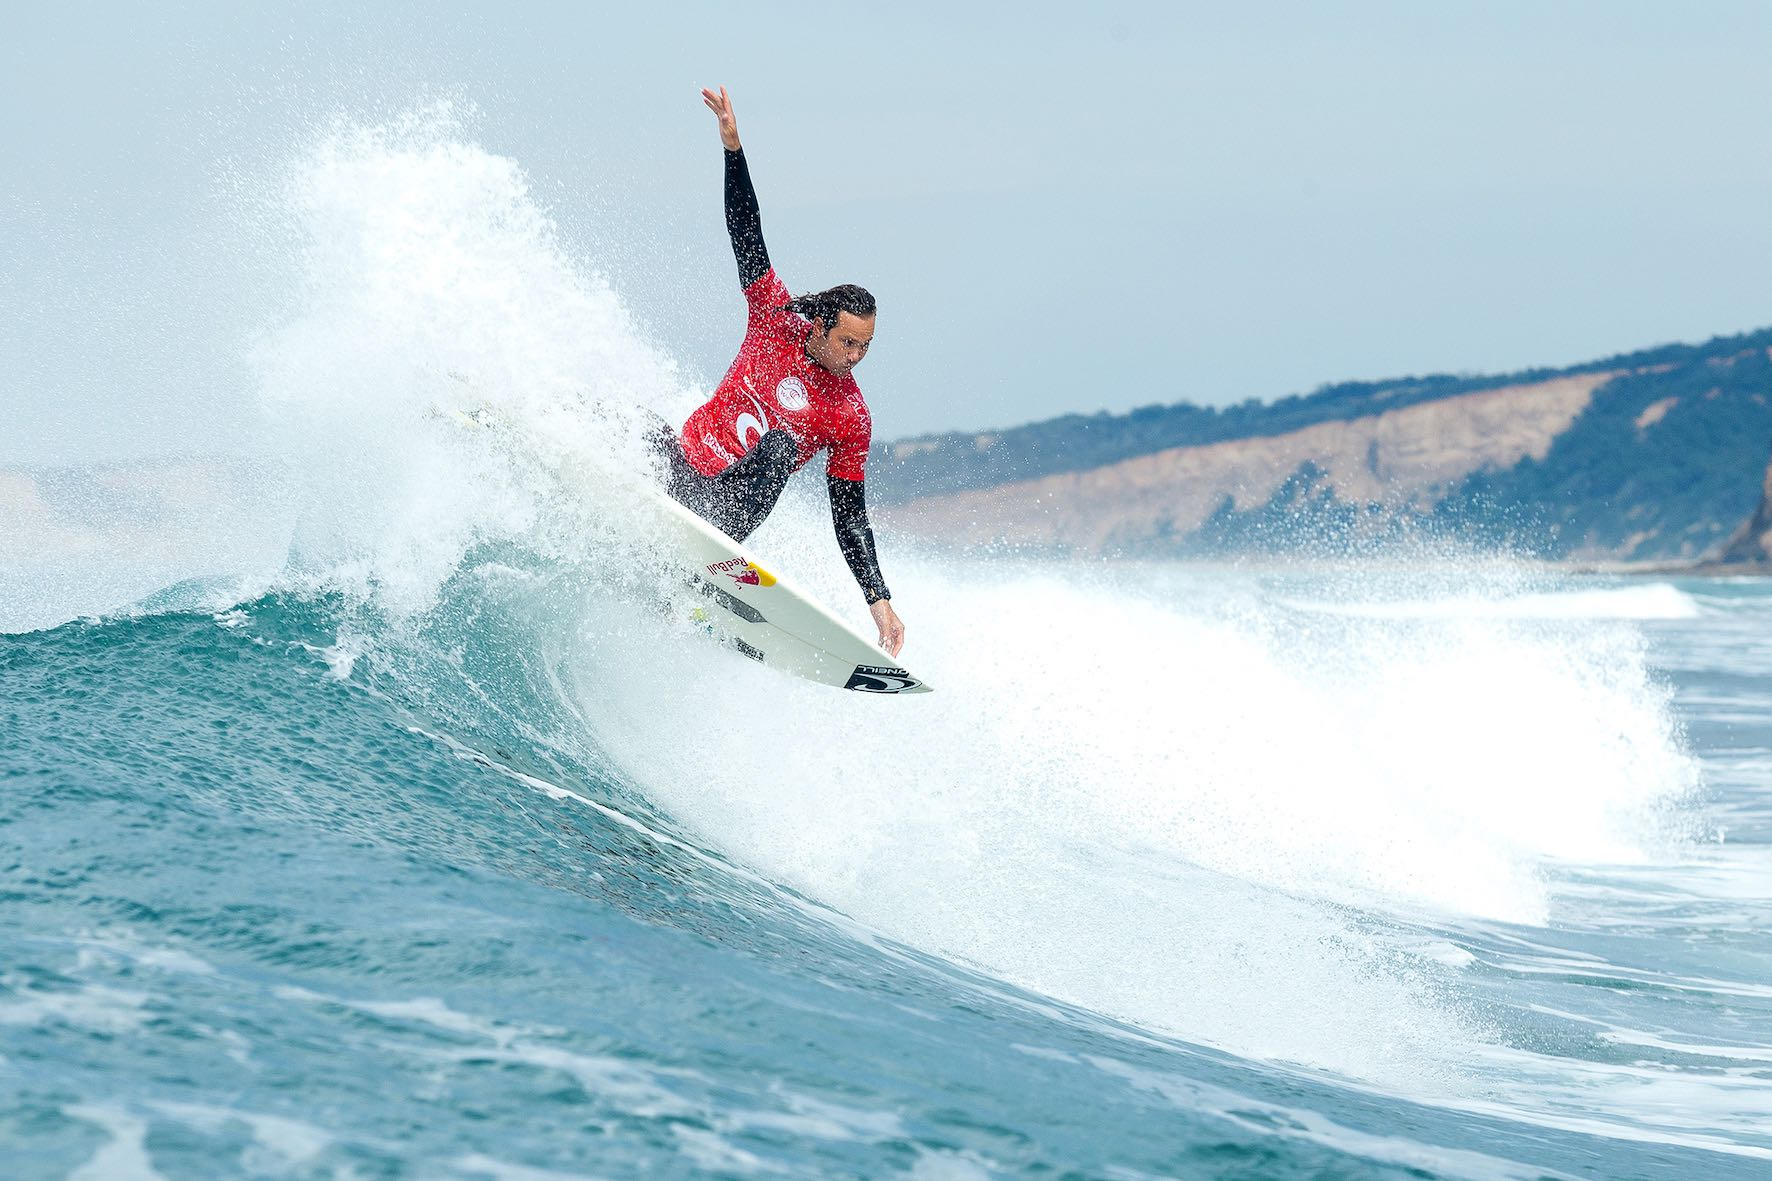 Jordy Smith winning his Round 1 heat at the Rip Curl Pro Bells Beach in Australia